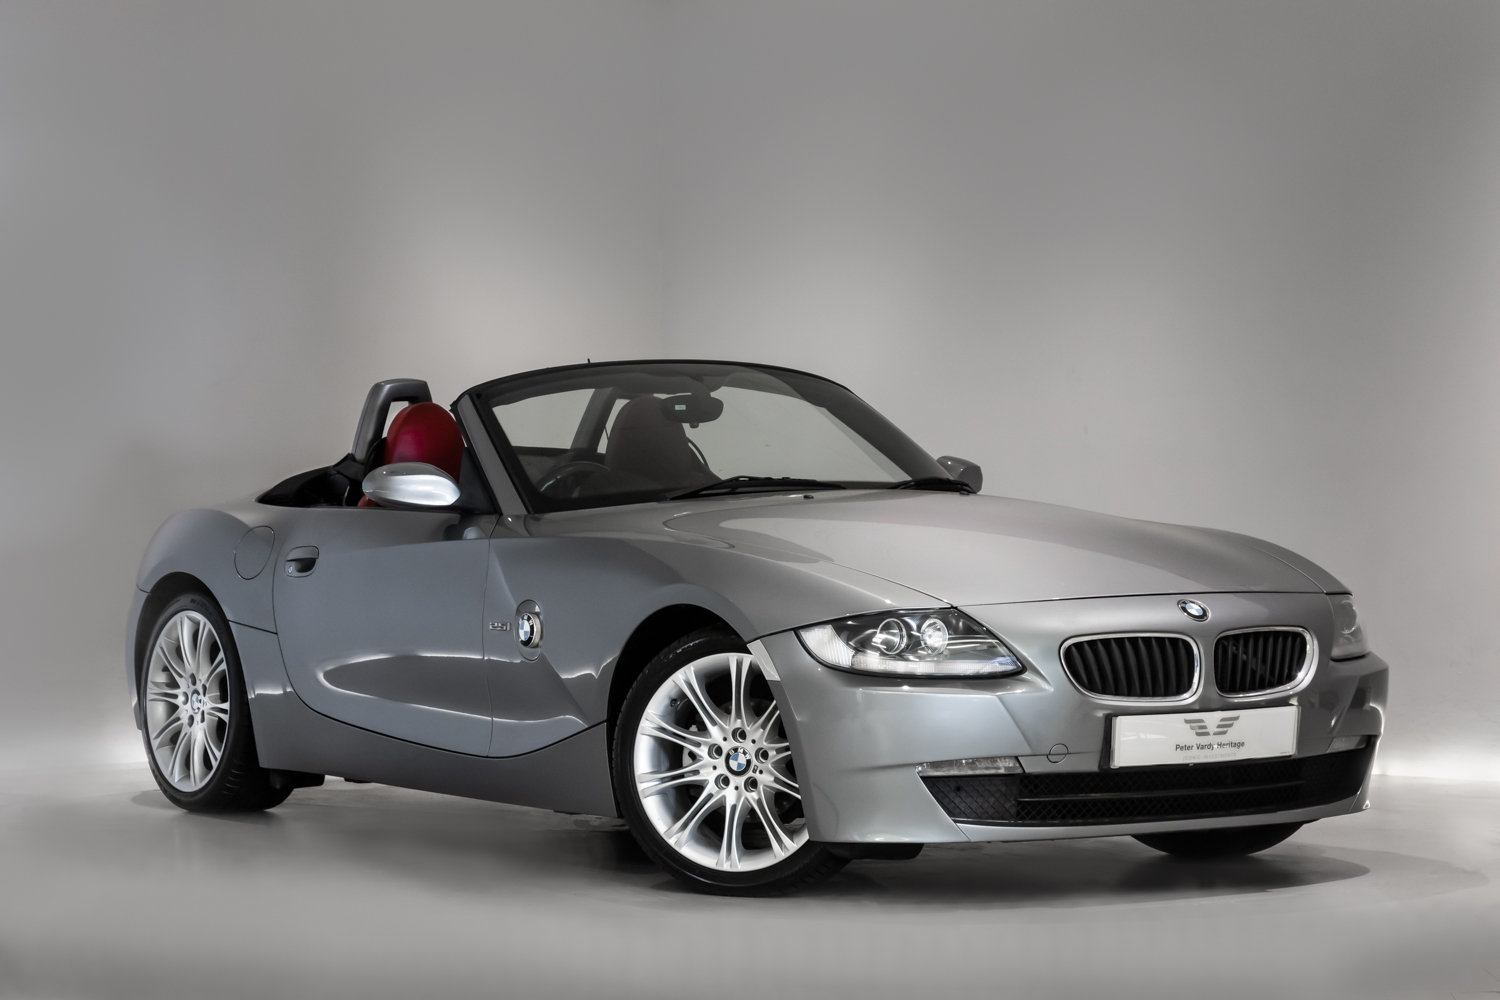 2007 £100 Deposit + £135 Per Month - Ratesetter For Sale (picture 1 of 12)